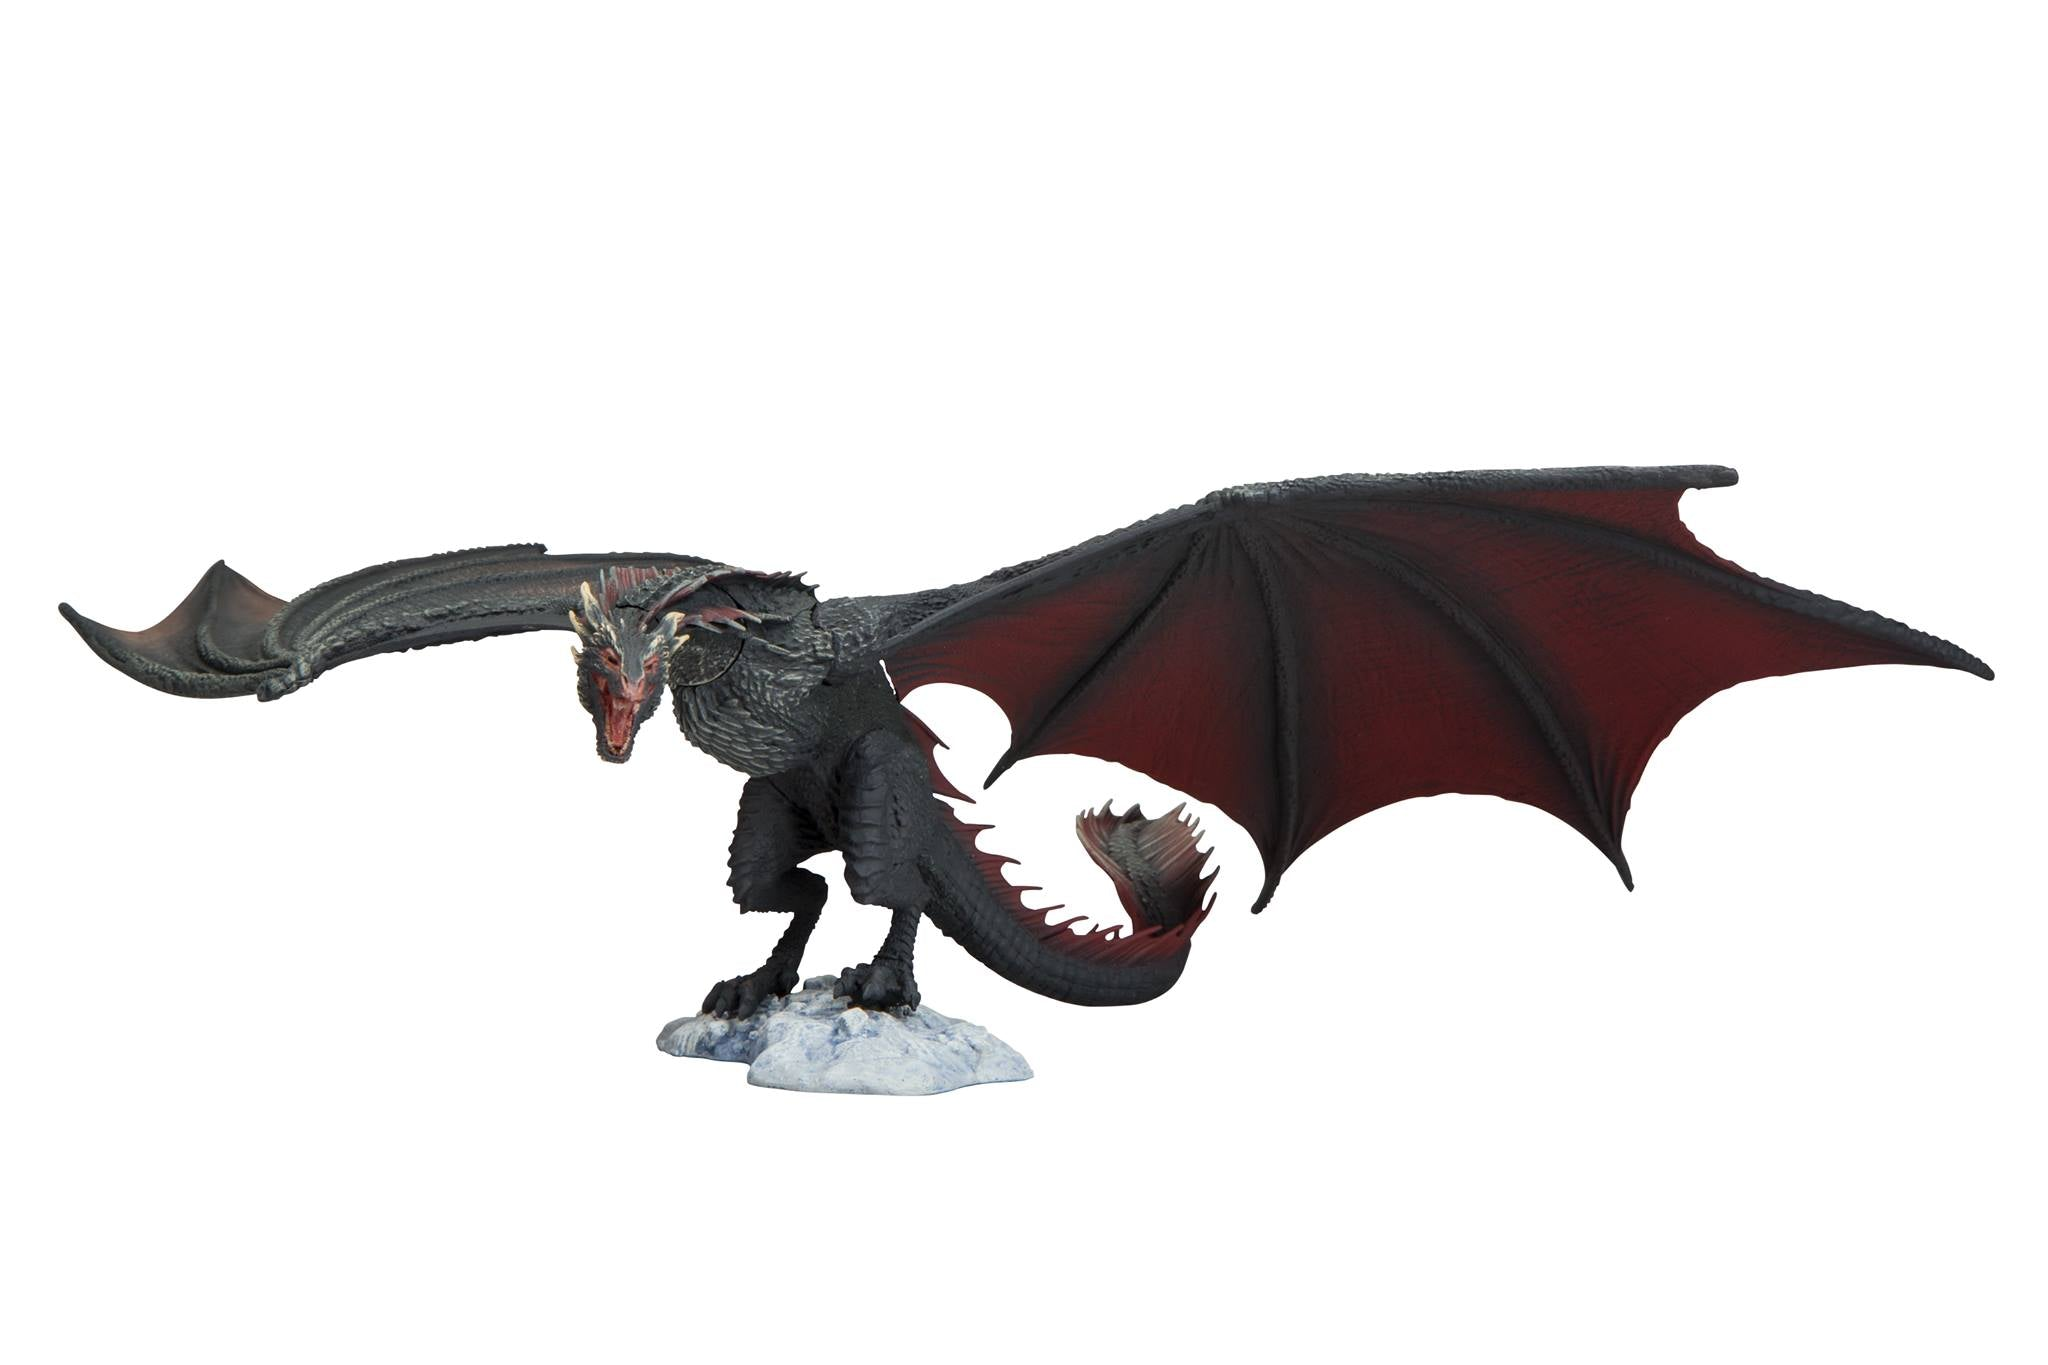 【預訂日期至另行通知】McFarlane Toys Game of Thrones - Drogon Deluxe Action Figure